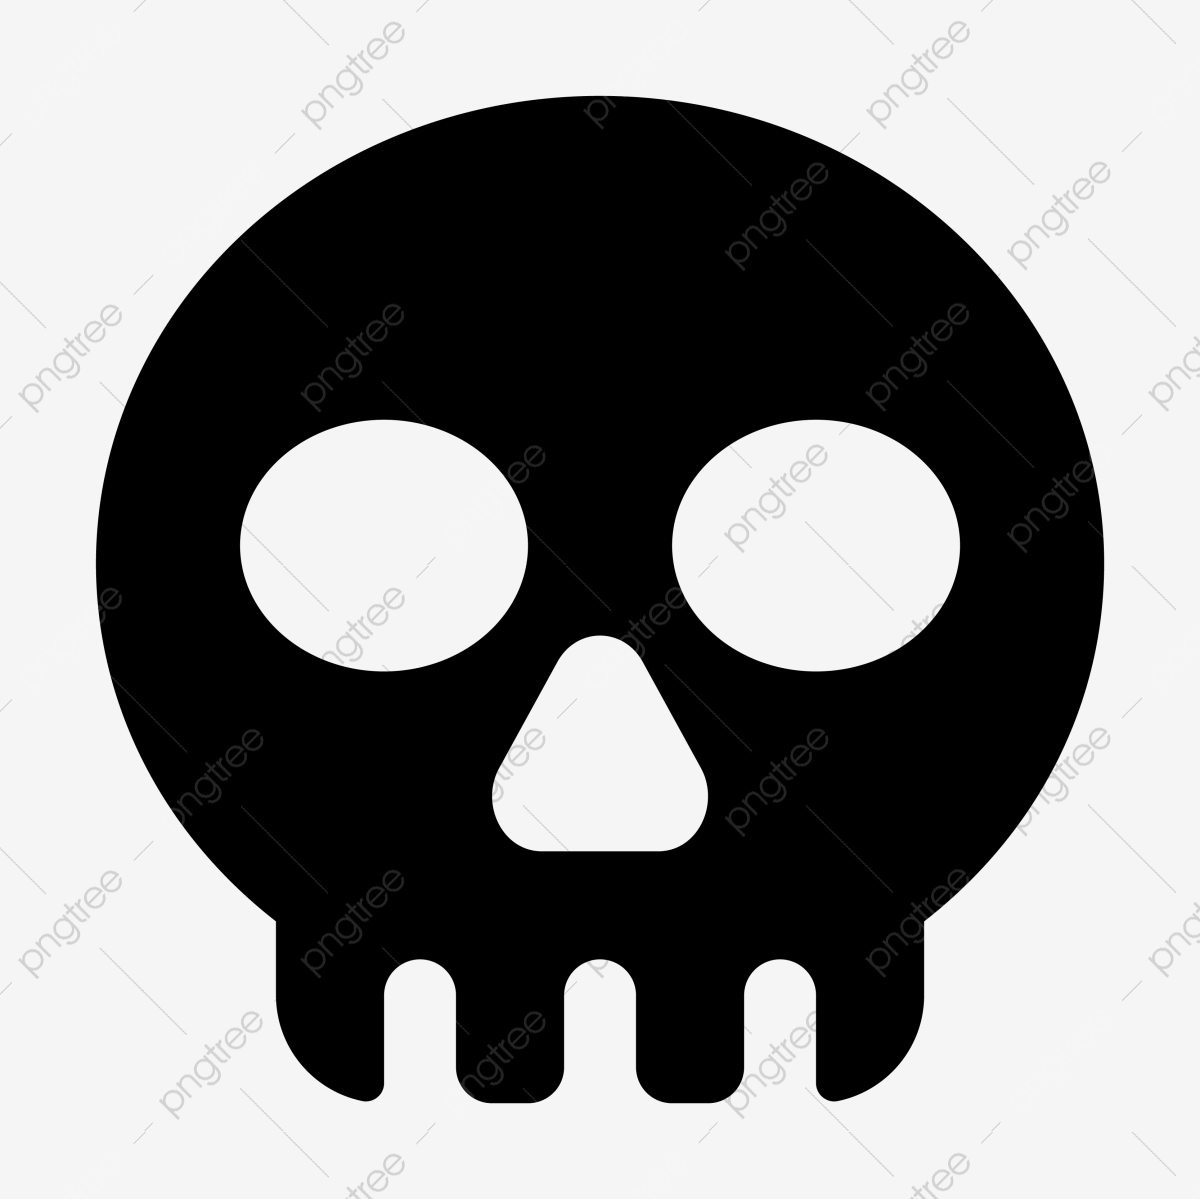 Skull Icon Vector Skull Icons Skull Skeleton Png And Vector With Transparent Background For Free Download Now brewing…font awesome 6 alpha! https pngtree com freepng skull icon vector 5072873 html